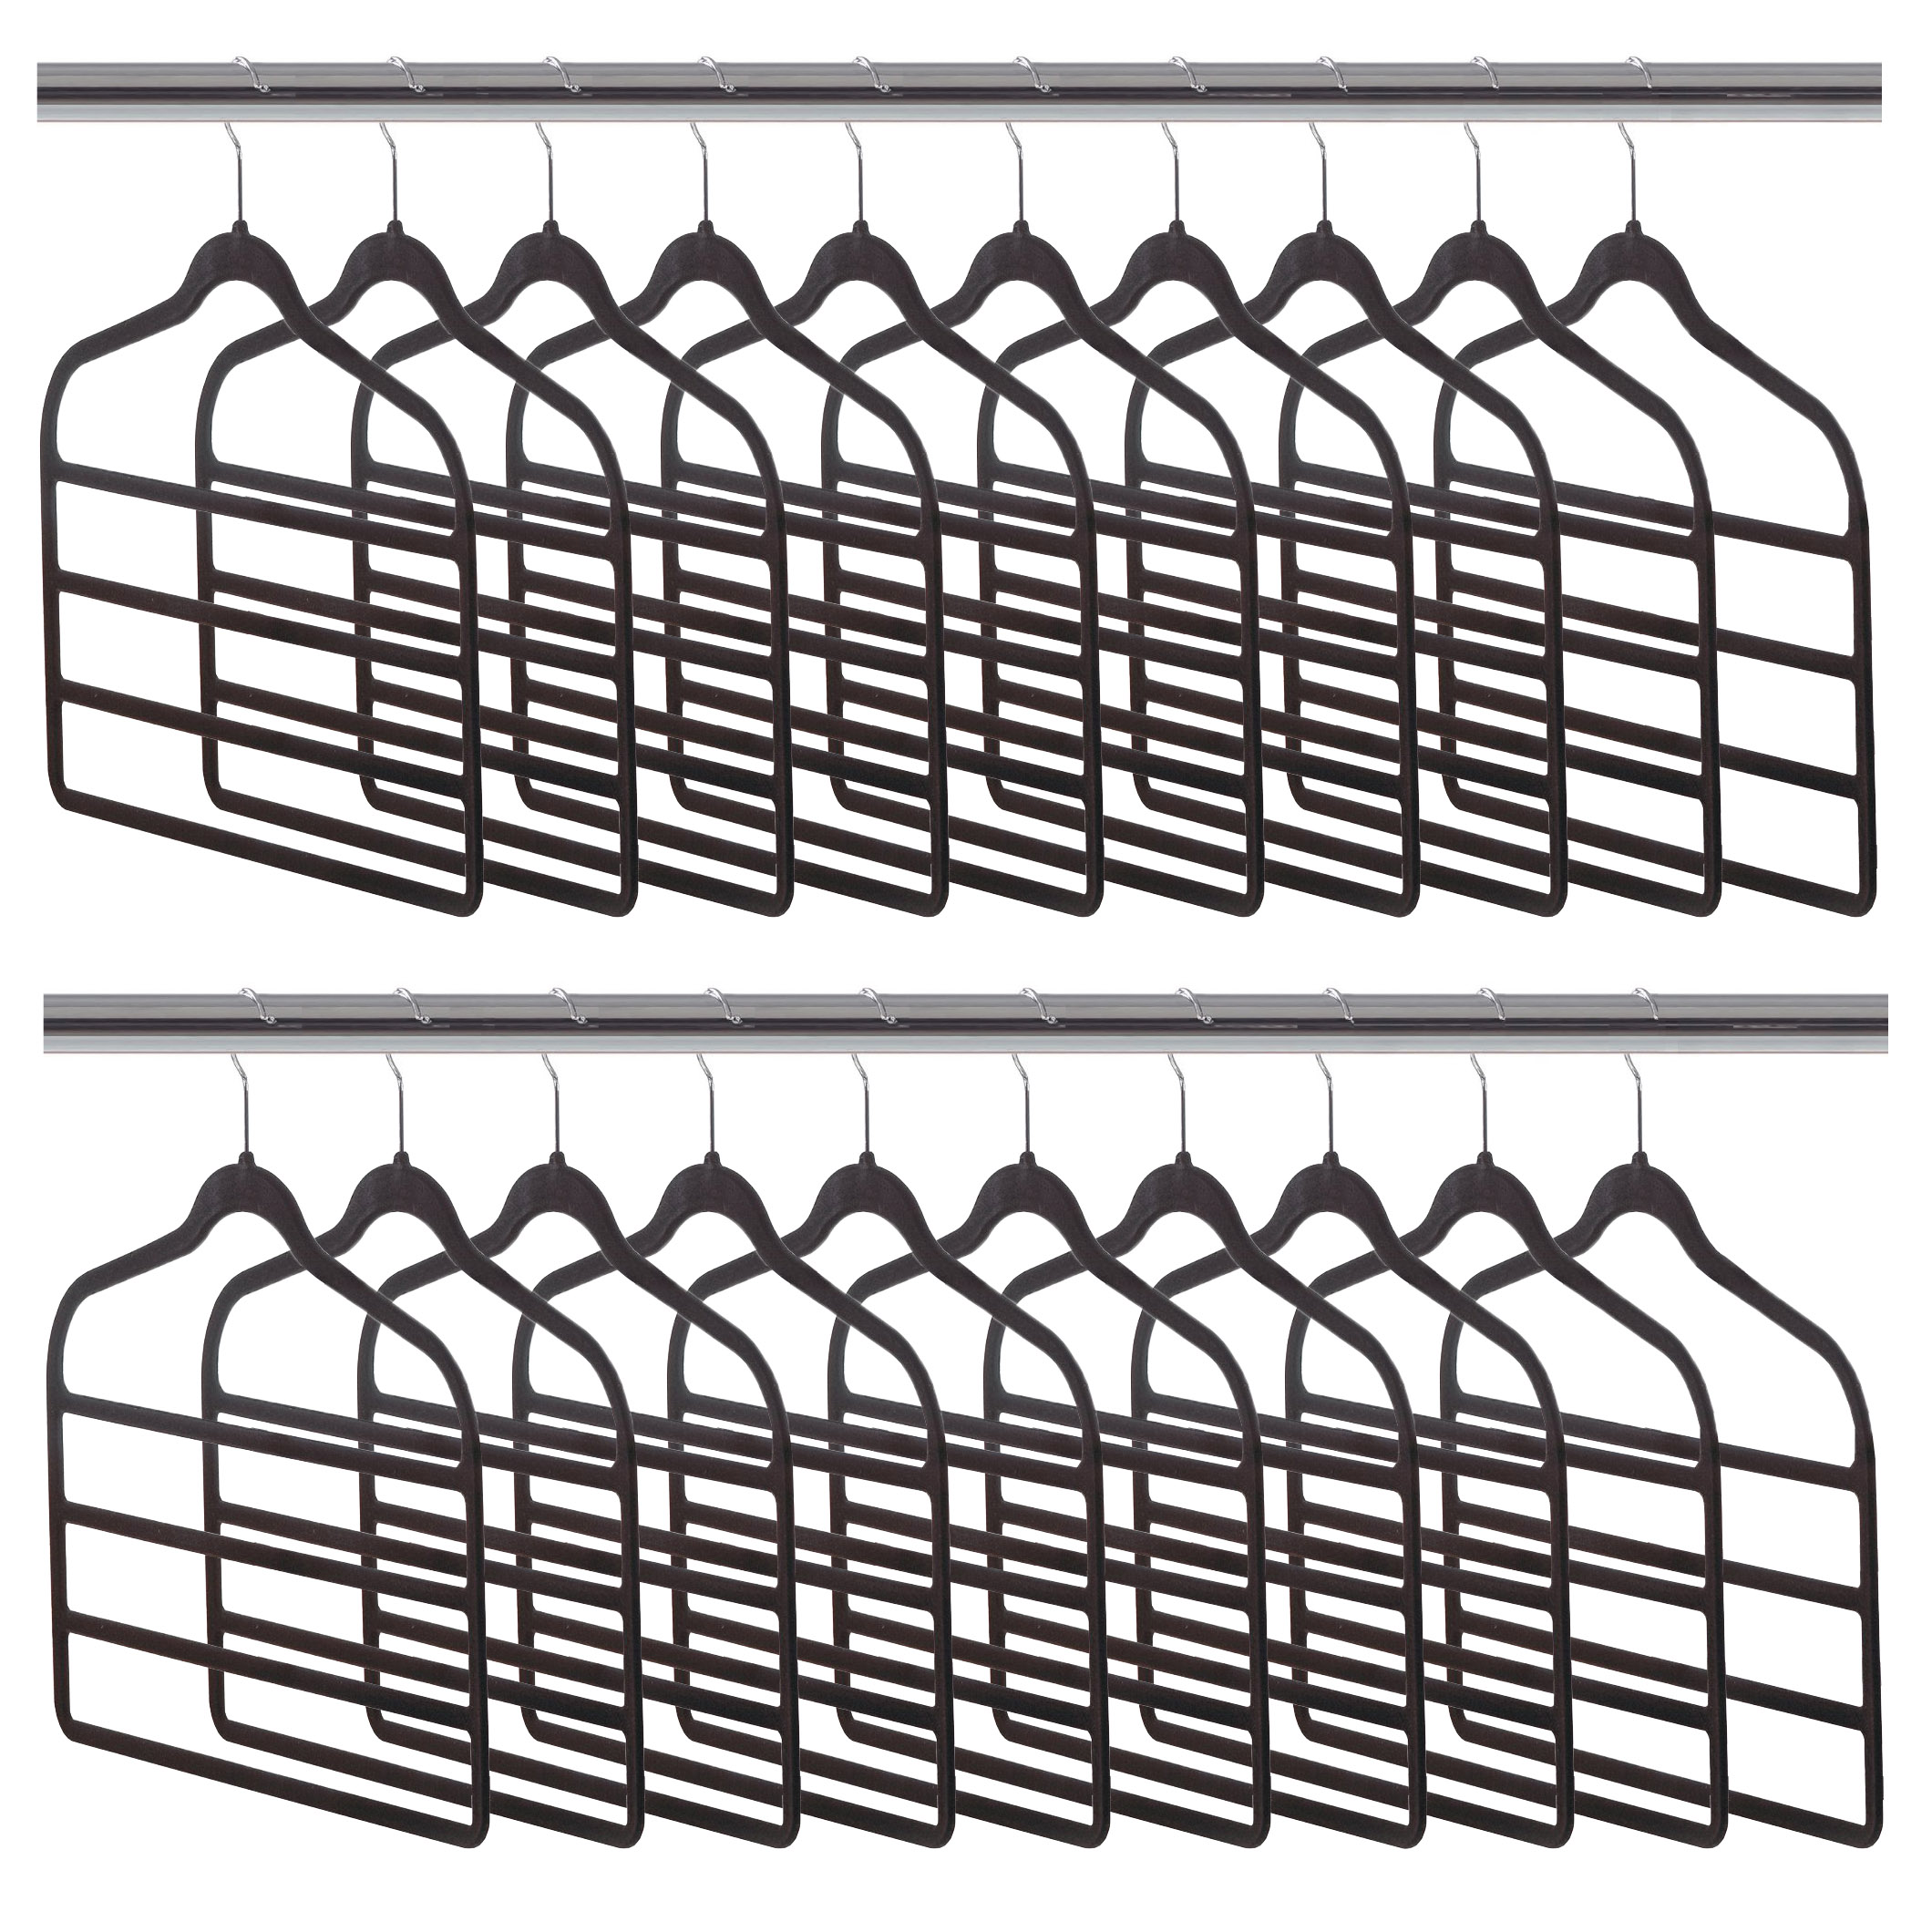 Home Ease 4-Tier Pants and Skirts Velvet Hanger, Black (20 Pack) | 2PKPH2000